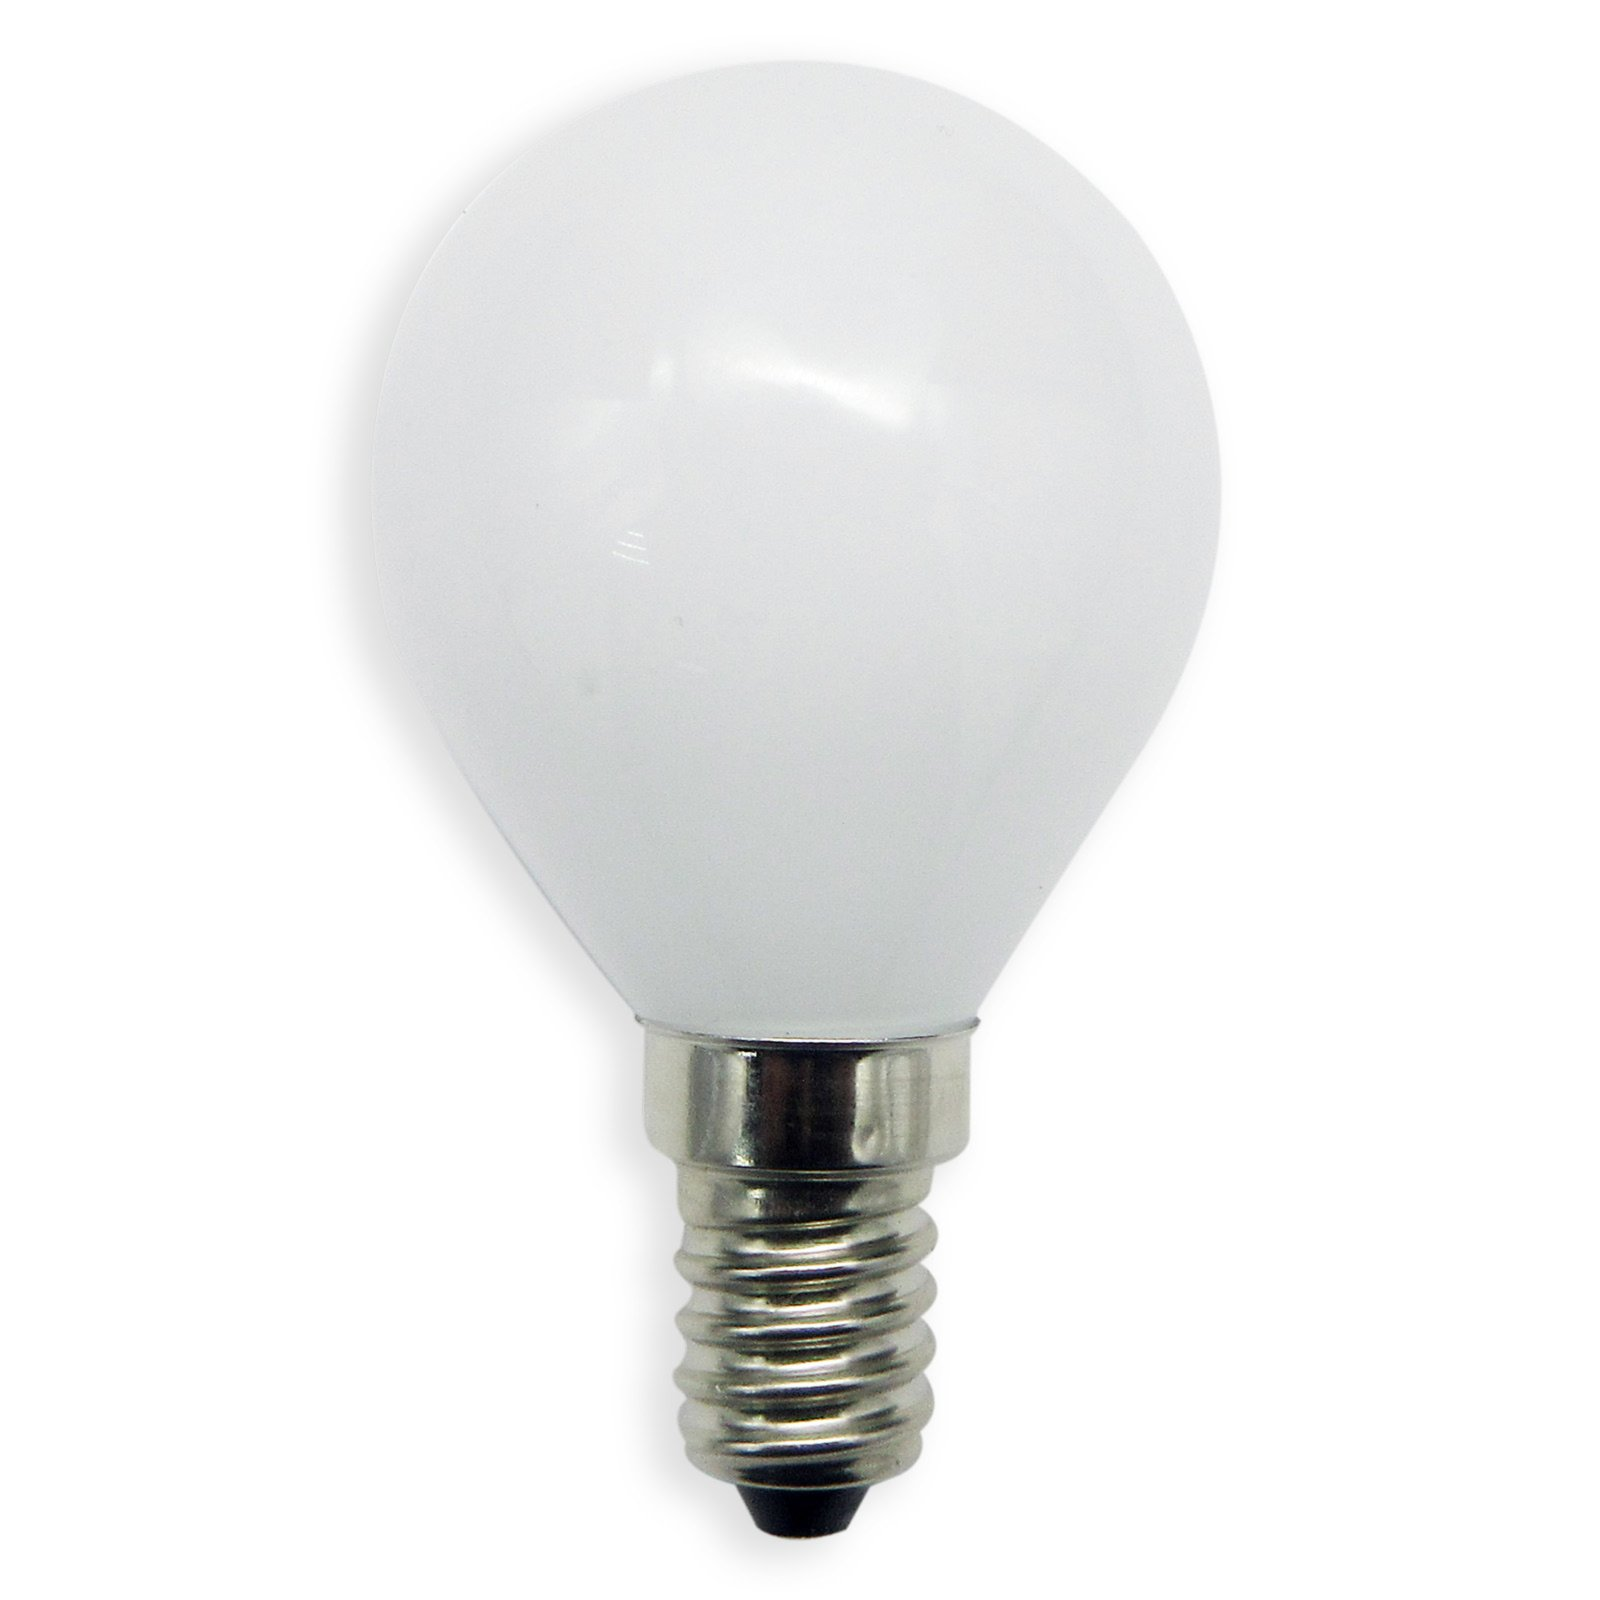 LED-Tropfenlampe Nostalgia LIGHTME - E14 - 1,8 W - warmweiß